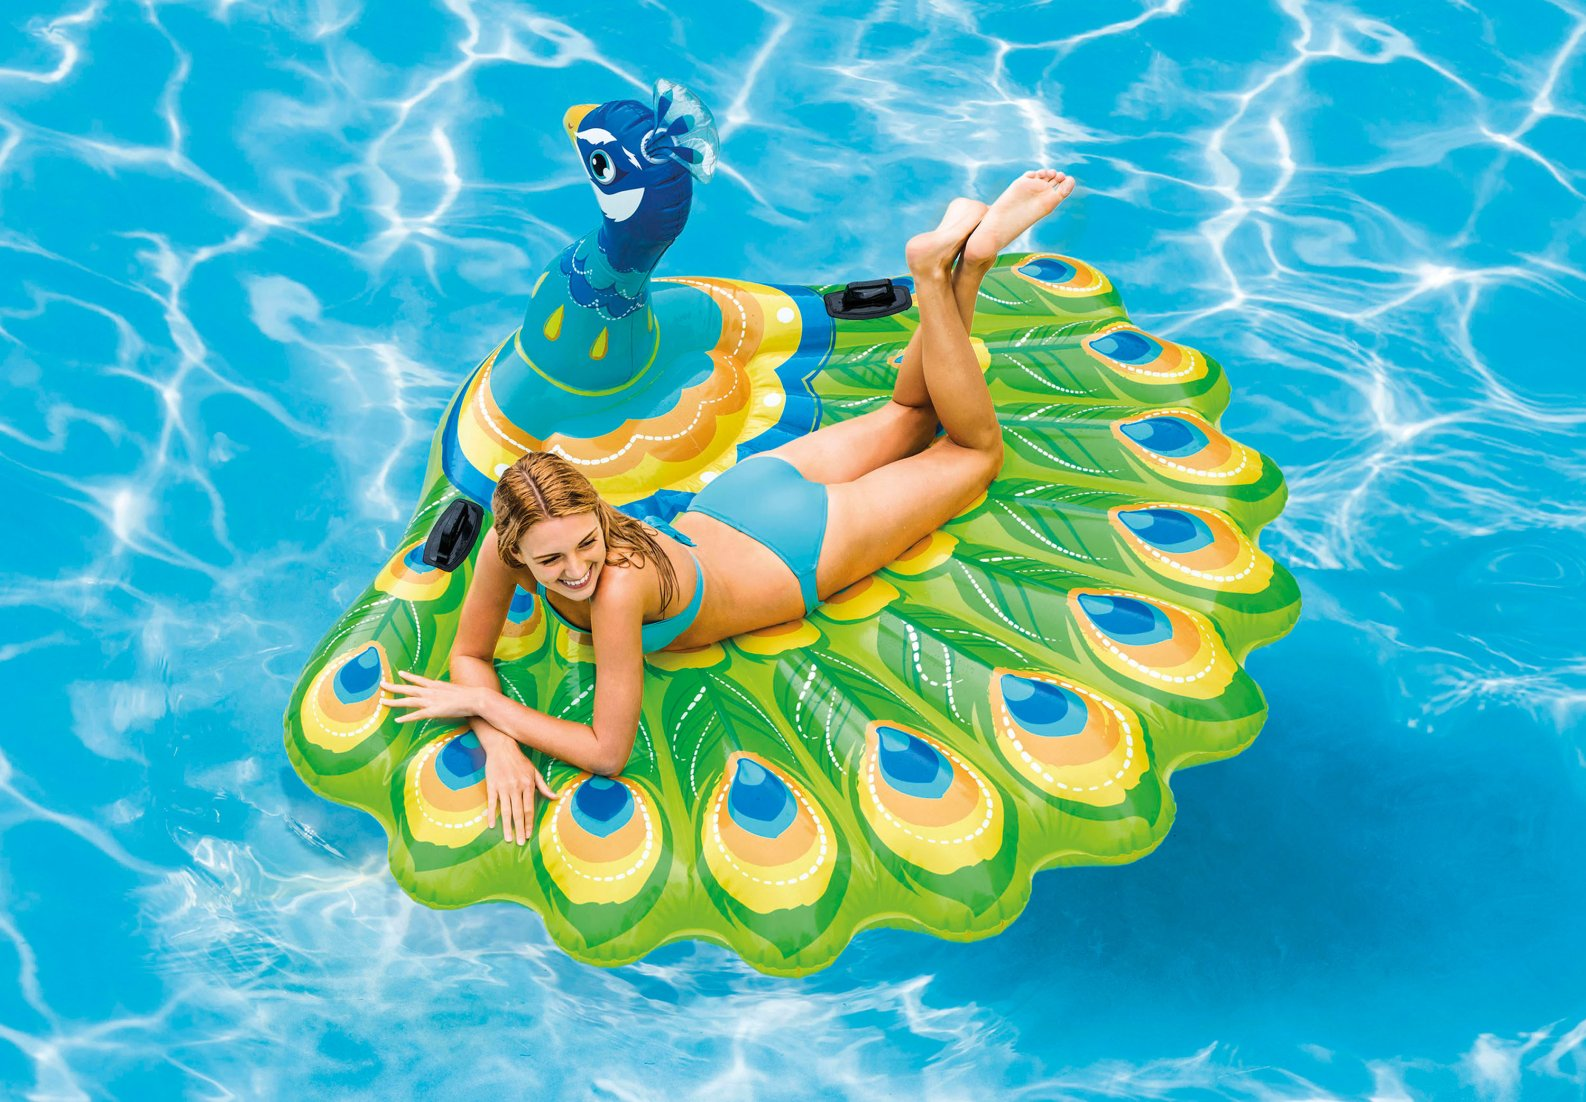 INTEX-76 INCHX64 INCHX37 INCH PEACOCK ISLAND, Ages 6+ (57250EU)